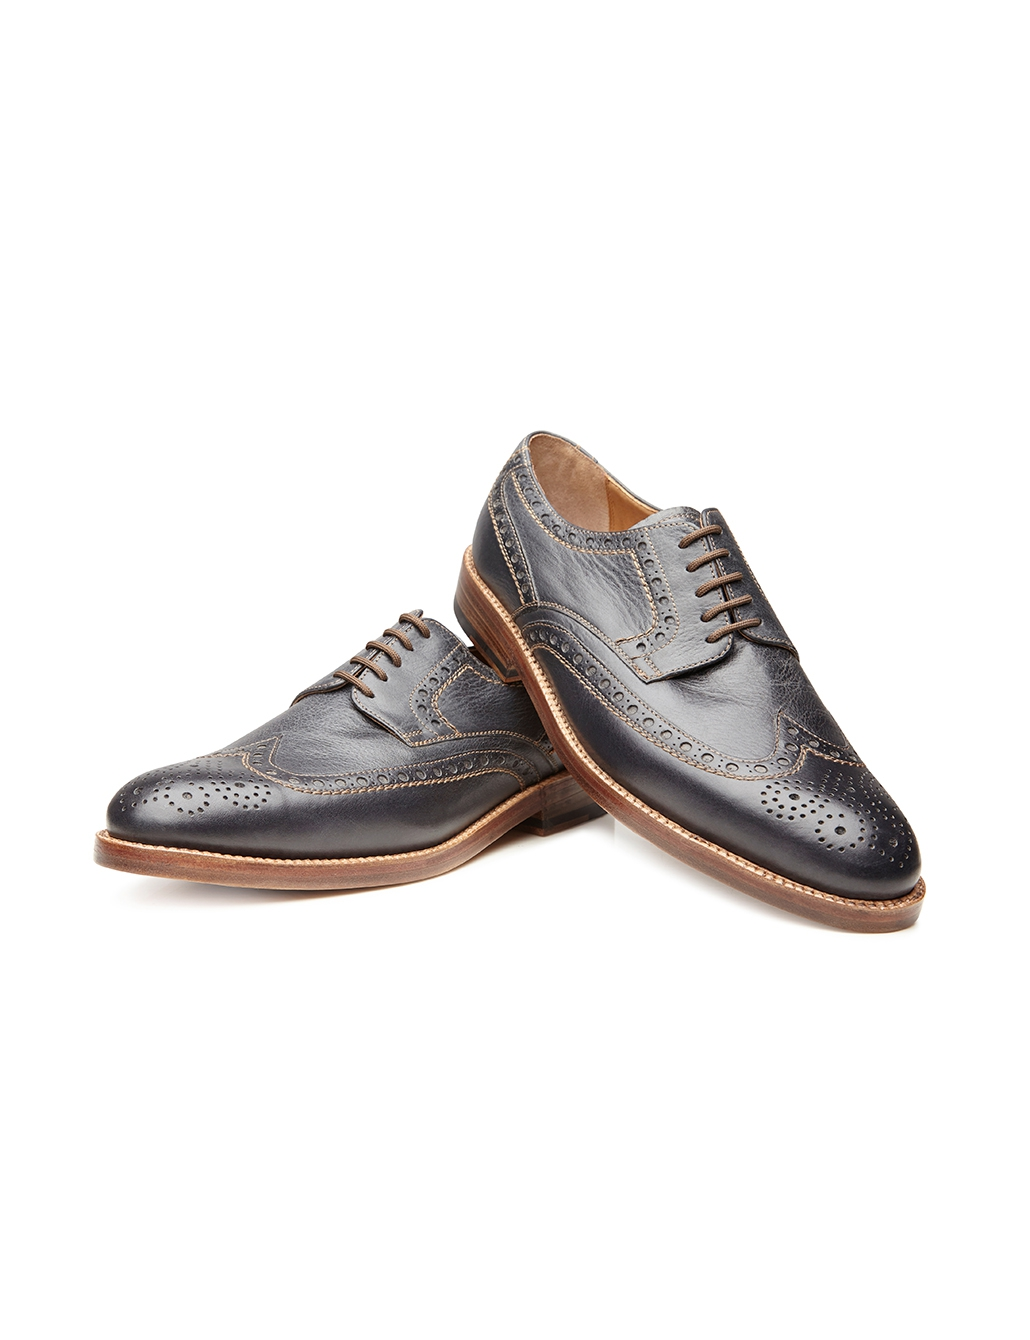 Luzern Full-Brogue GC